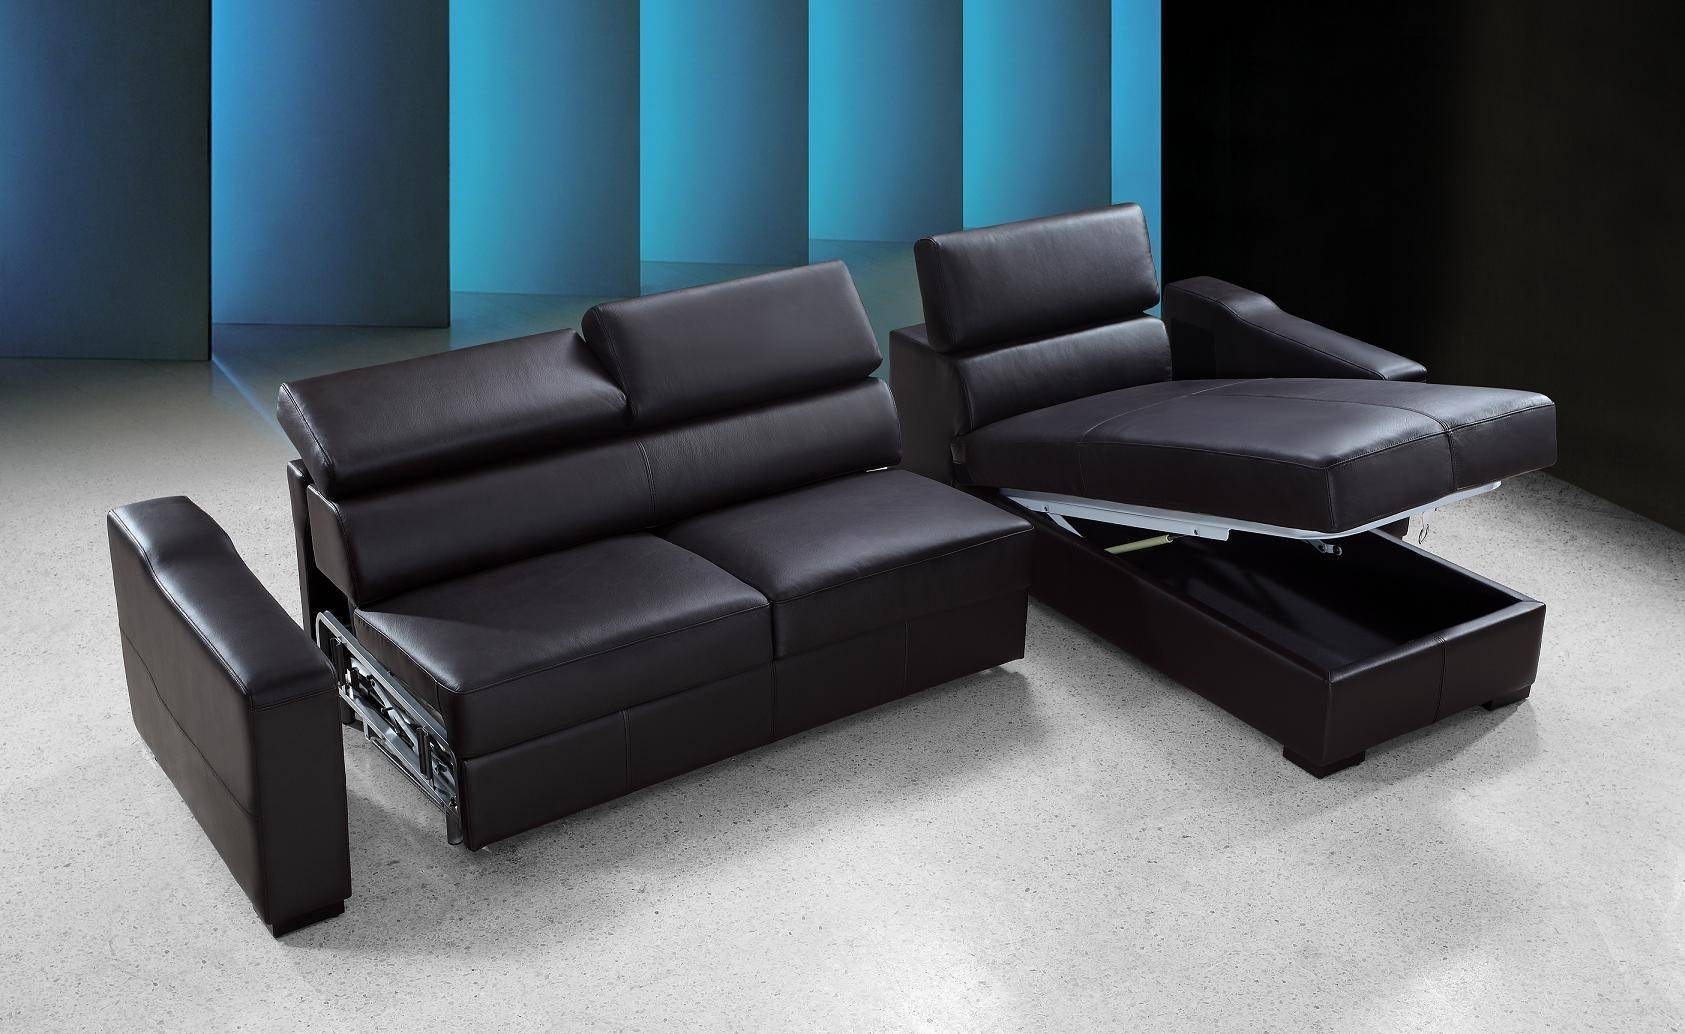 Looking For Sofa Beds, Or Leather Sofa Bed? We Got All Modern Sofa regarding Sectional Sofa Beds (Image 8 of 30)